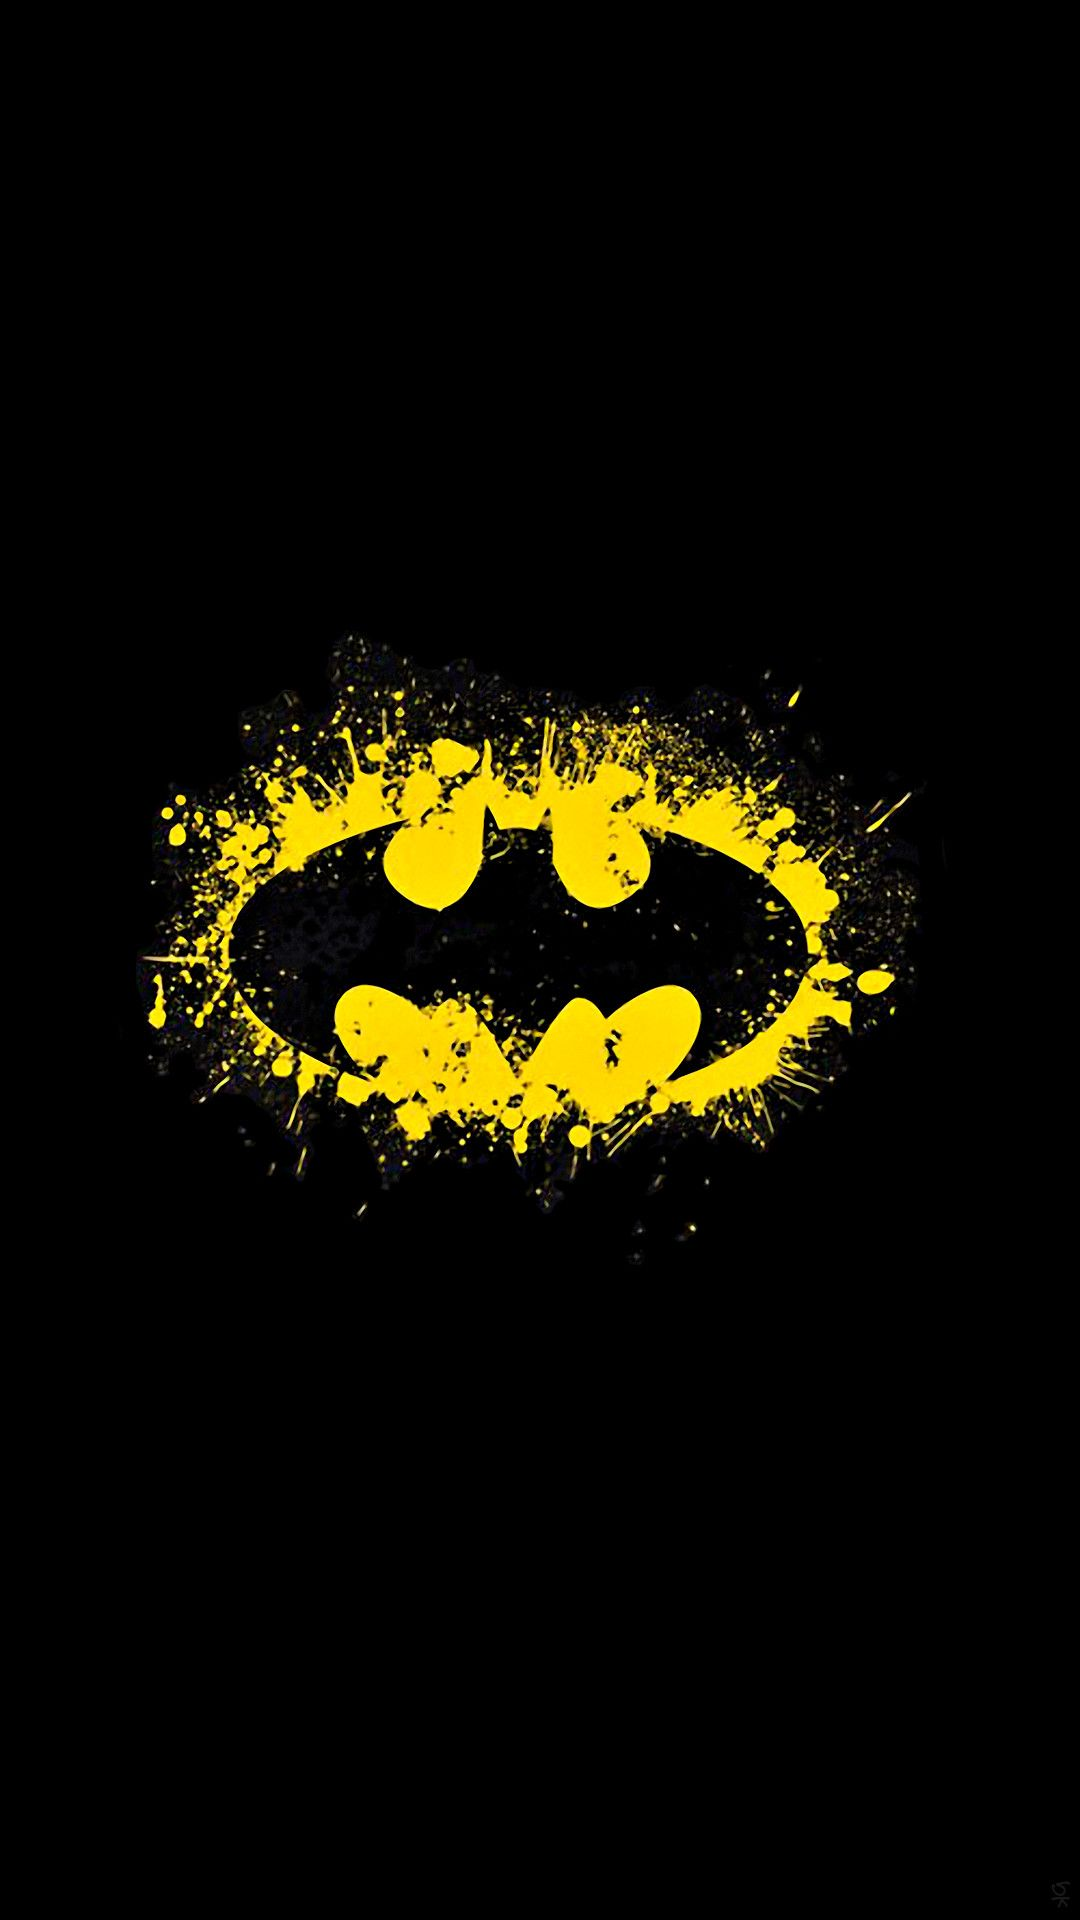 Smile More Hd Wallpaper Android In 2020 Batman Wallpaper Iphone Batman Wallpaper Batman Painting